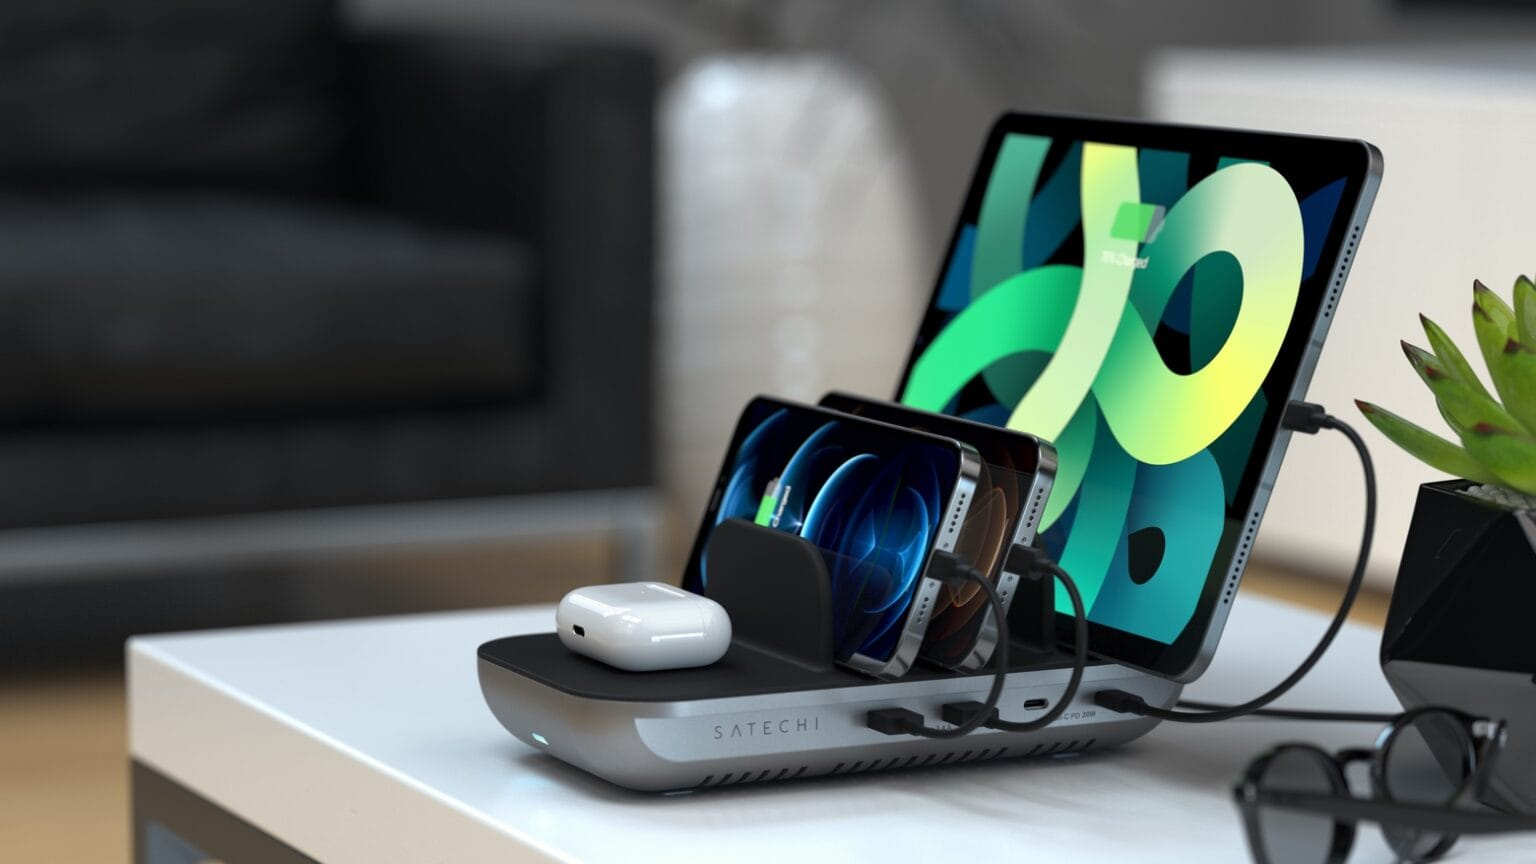 Satechi Dock5 Multi-Device Charging Station launched at CES 2021.